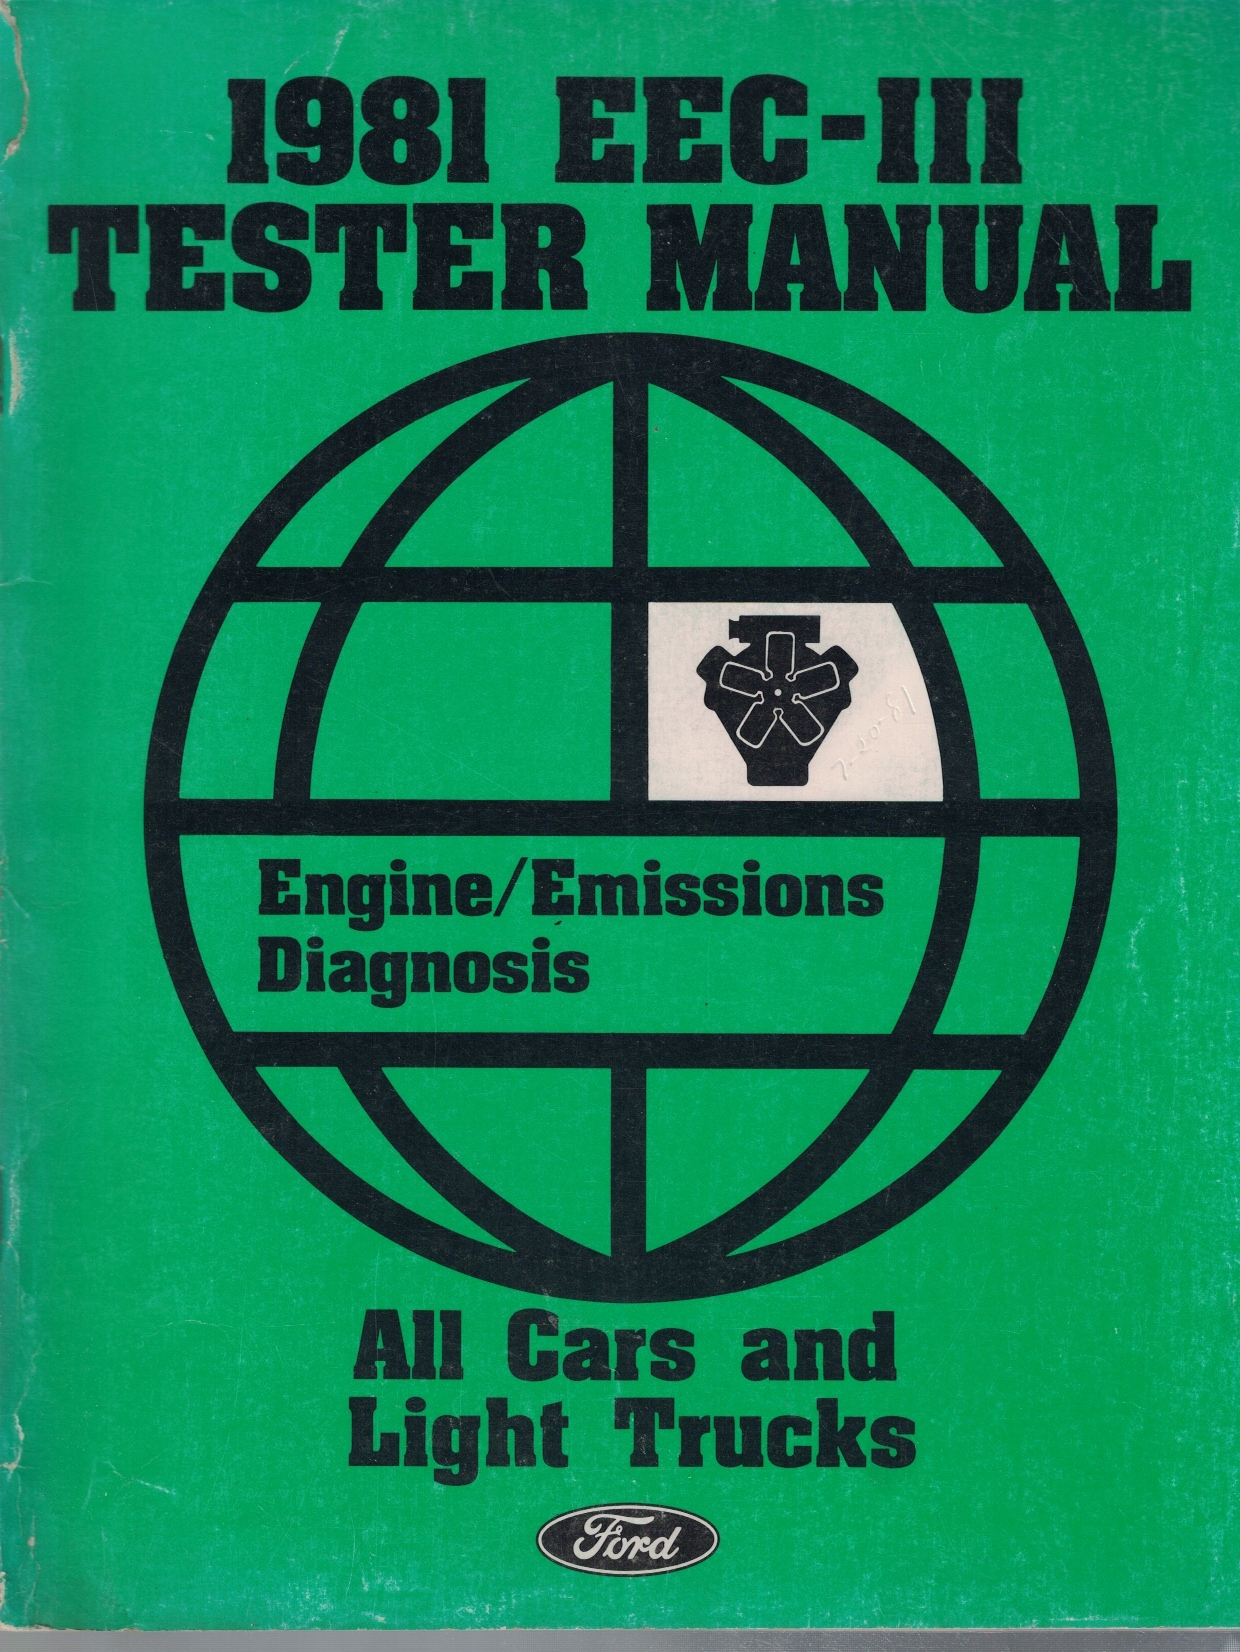 Image for 1981 Ford EEC-III Tester Manual, Engine/Emissions Diagnosis (All Cars and Light Trucks)